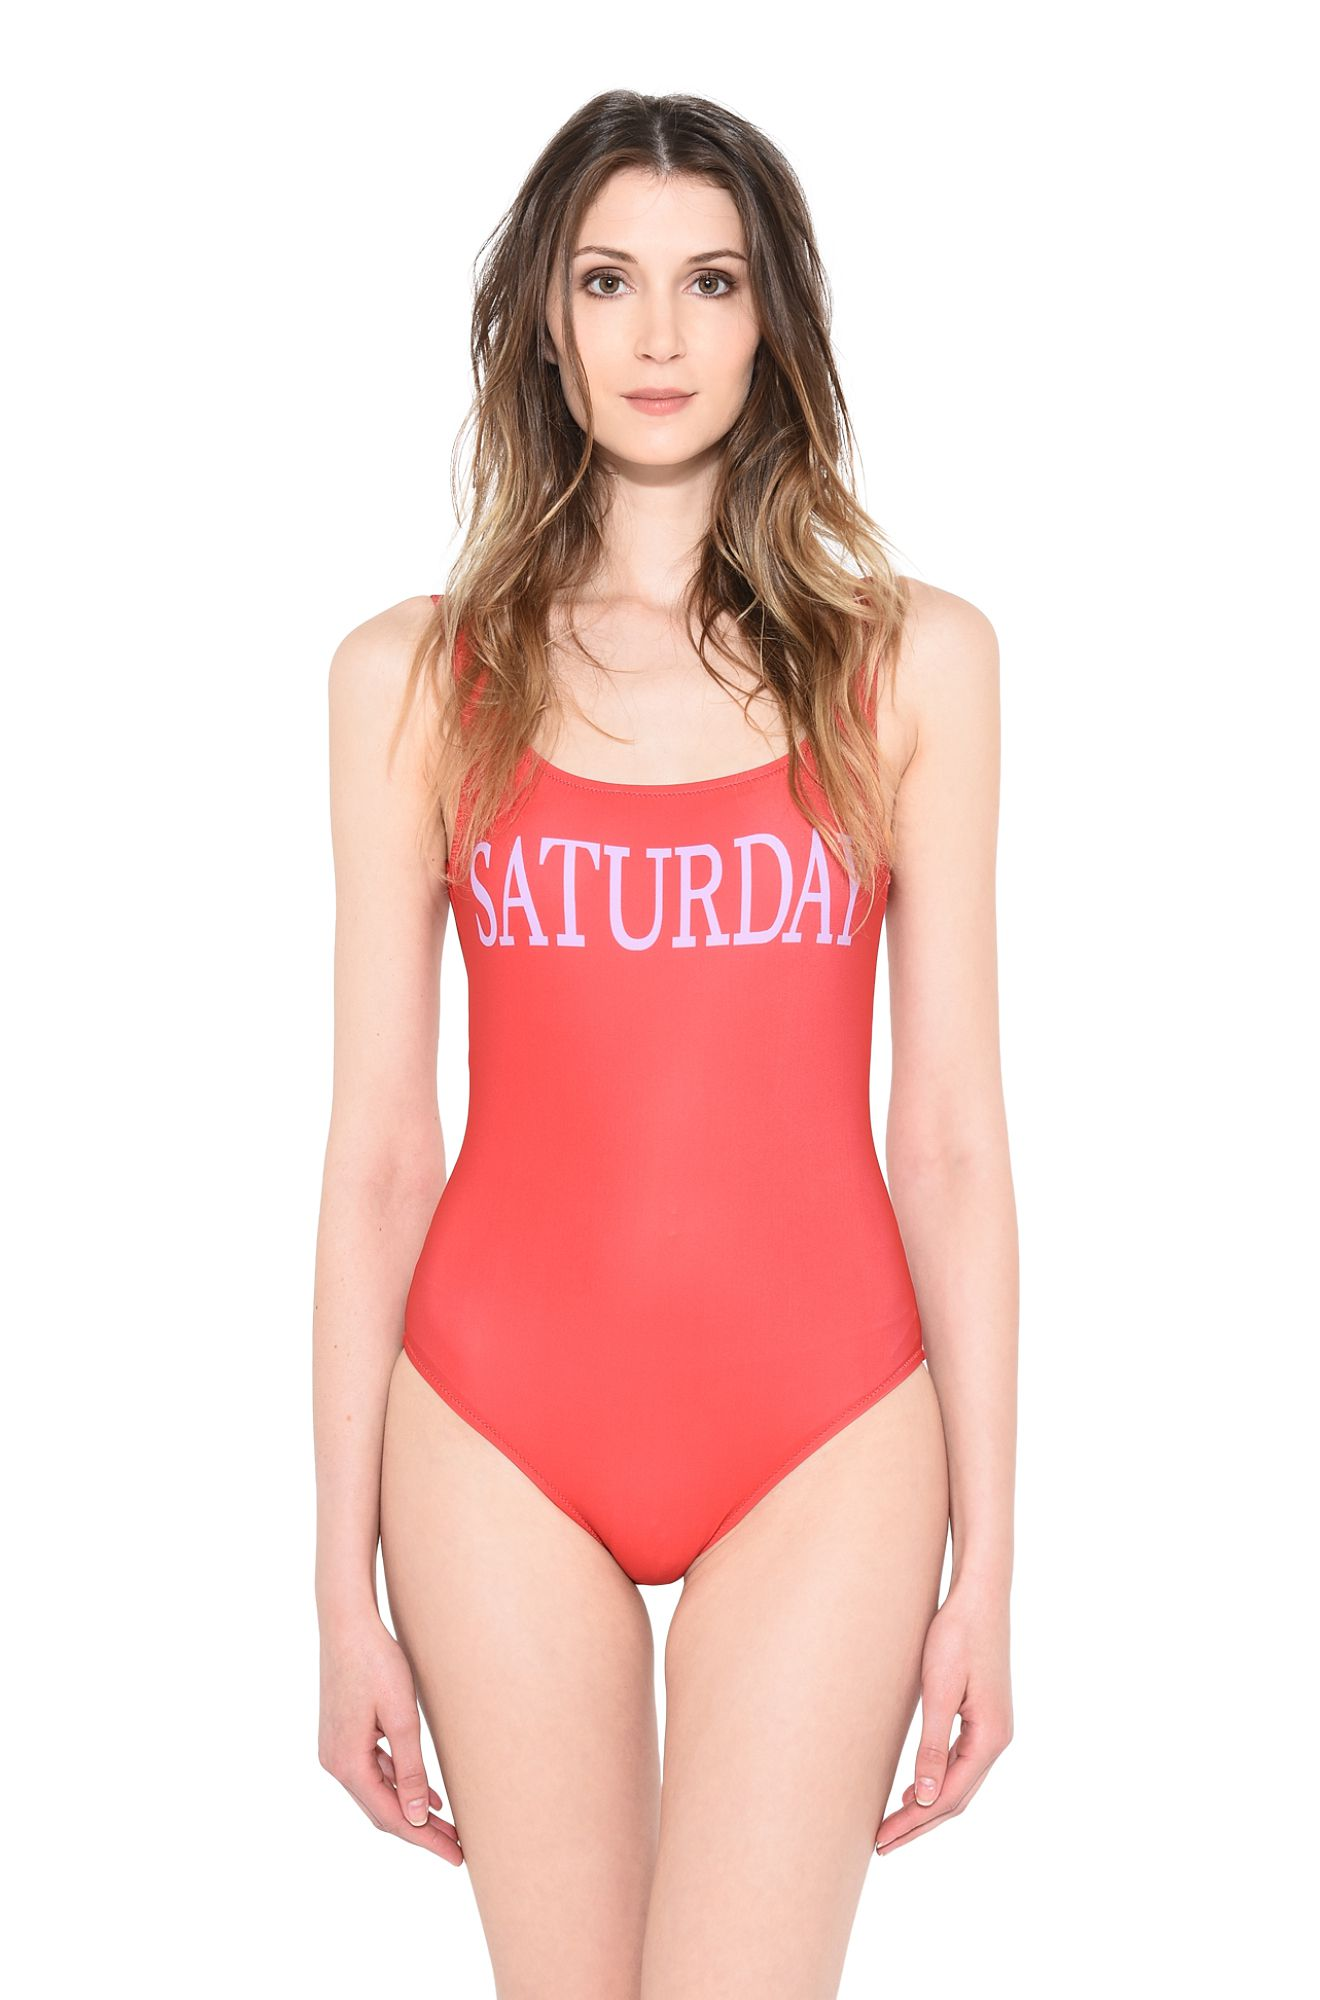 ALBERTA FERRETTI SWIMMING COSTUME D MONDAY IN PINK r